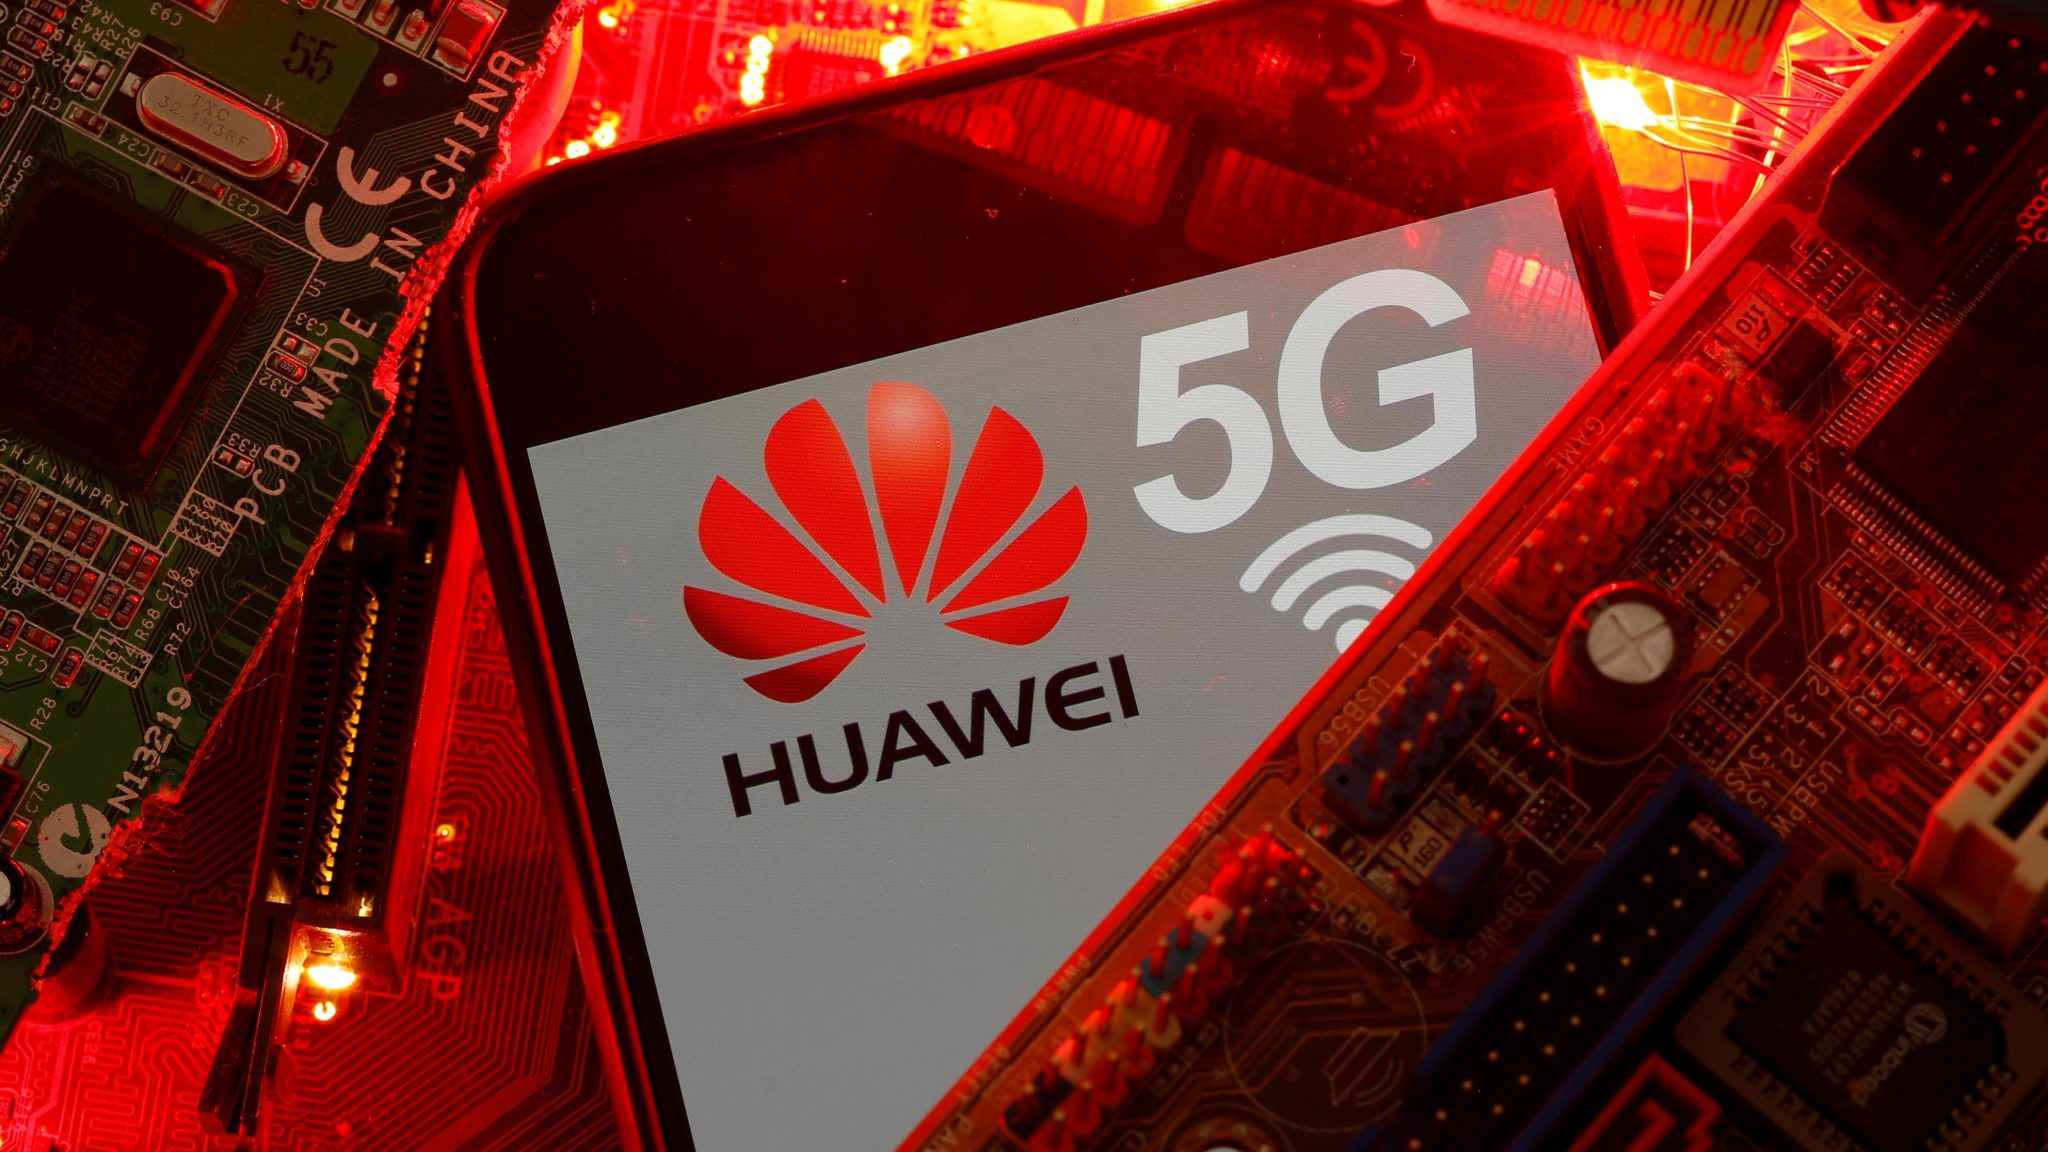 O futuro do 5g no brasil e o papel da huawei. Com vislumbre do futuro, huawei mostra as possibilidades que a super conectividade do 5g no brasil trará na vida cotidiana e corporativa